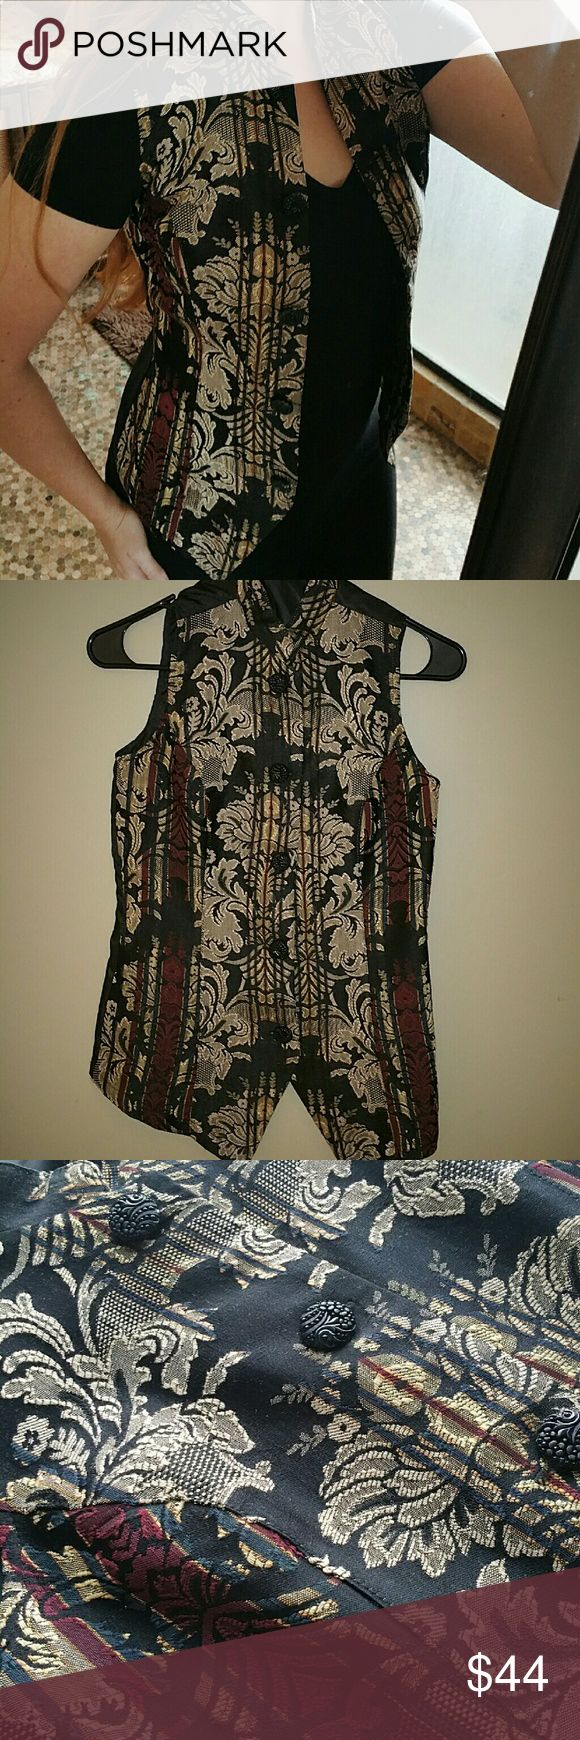 !! VINTAGE !! Asian Tapestry Vest This is a beautifully embroidered Asian tapestry vest! Ornate buttons and traditional collar.   This will look great buttoned up all by itself, or over a black short or long sleeve shirt. Pumps will pair great with this vest... perfect for a sushi date! Jackets & Coats Vests